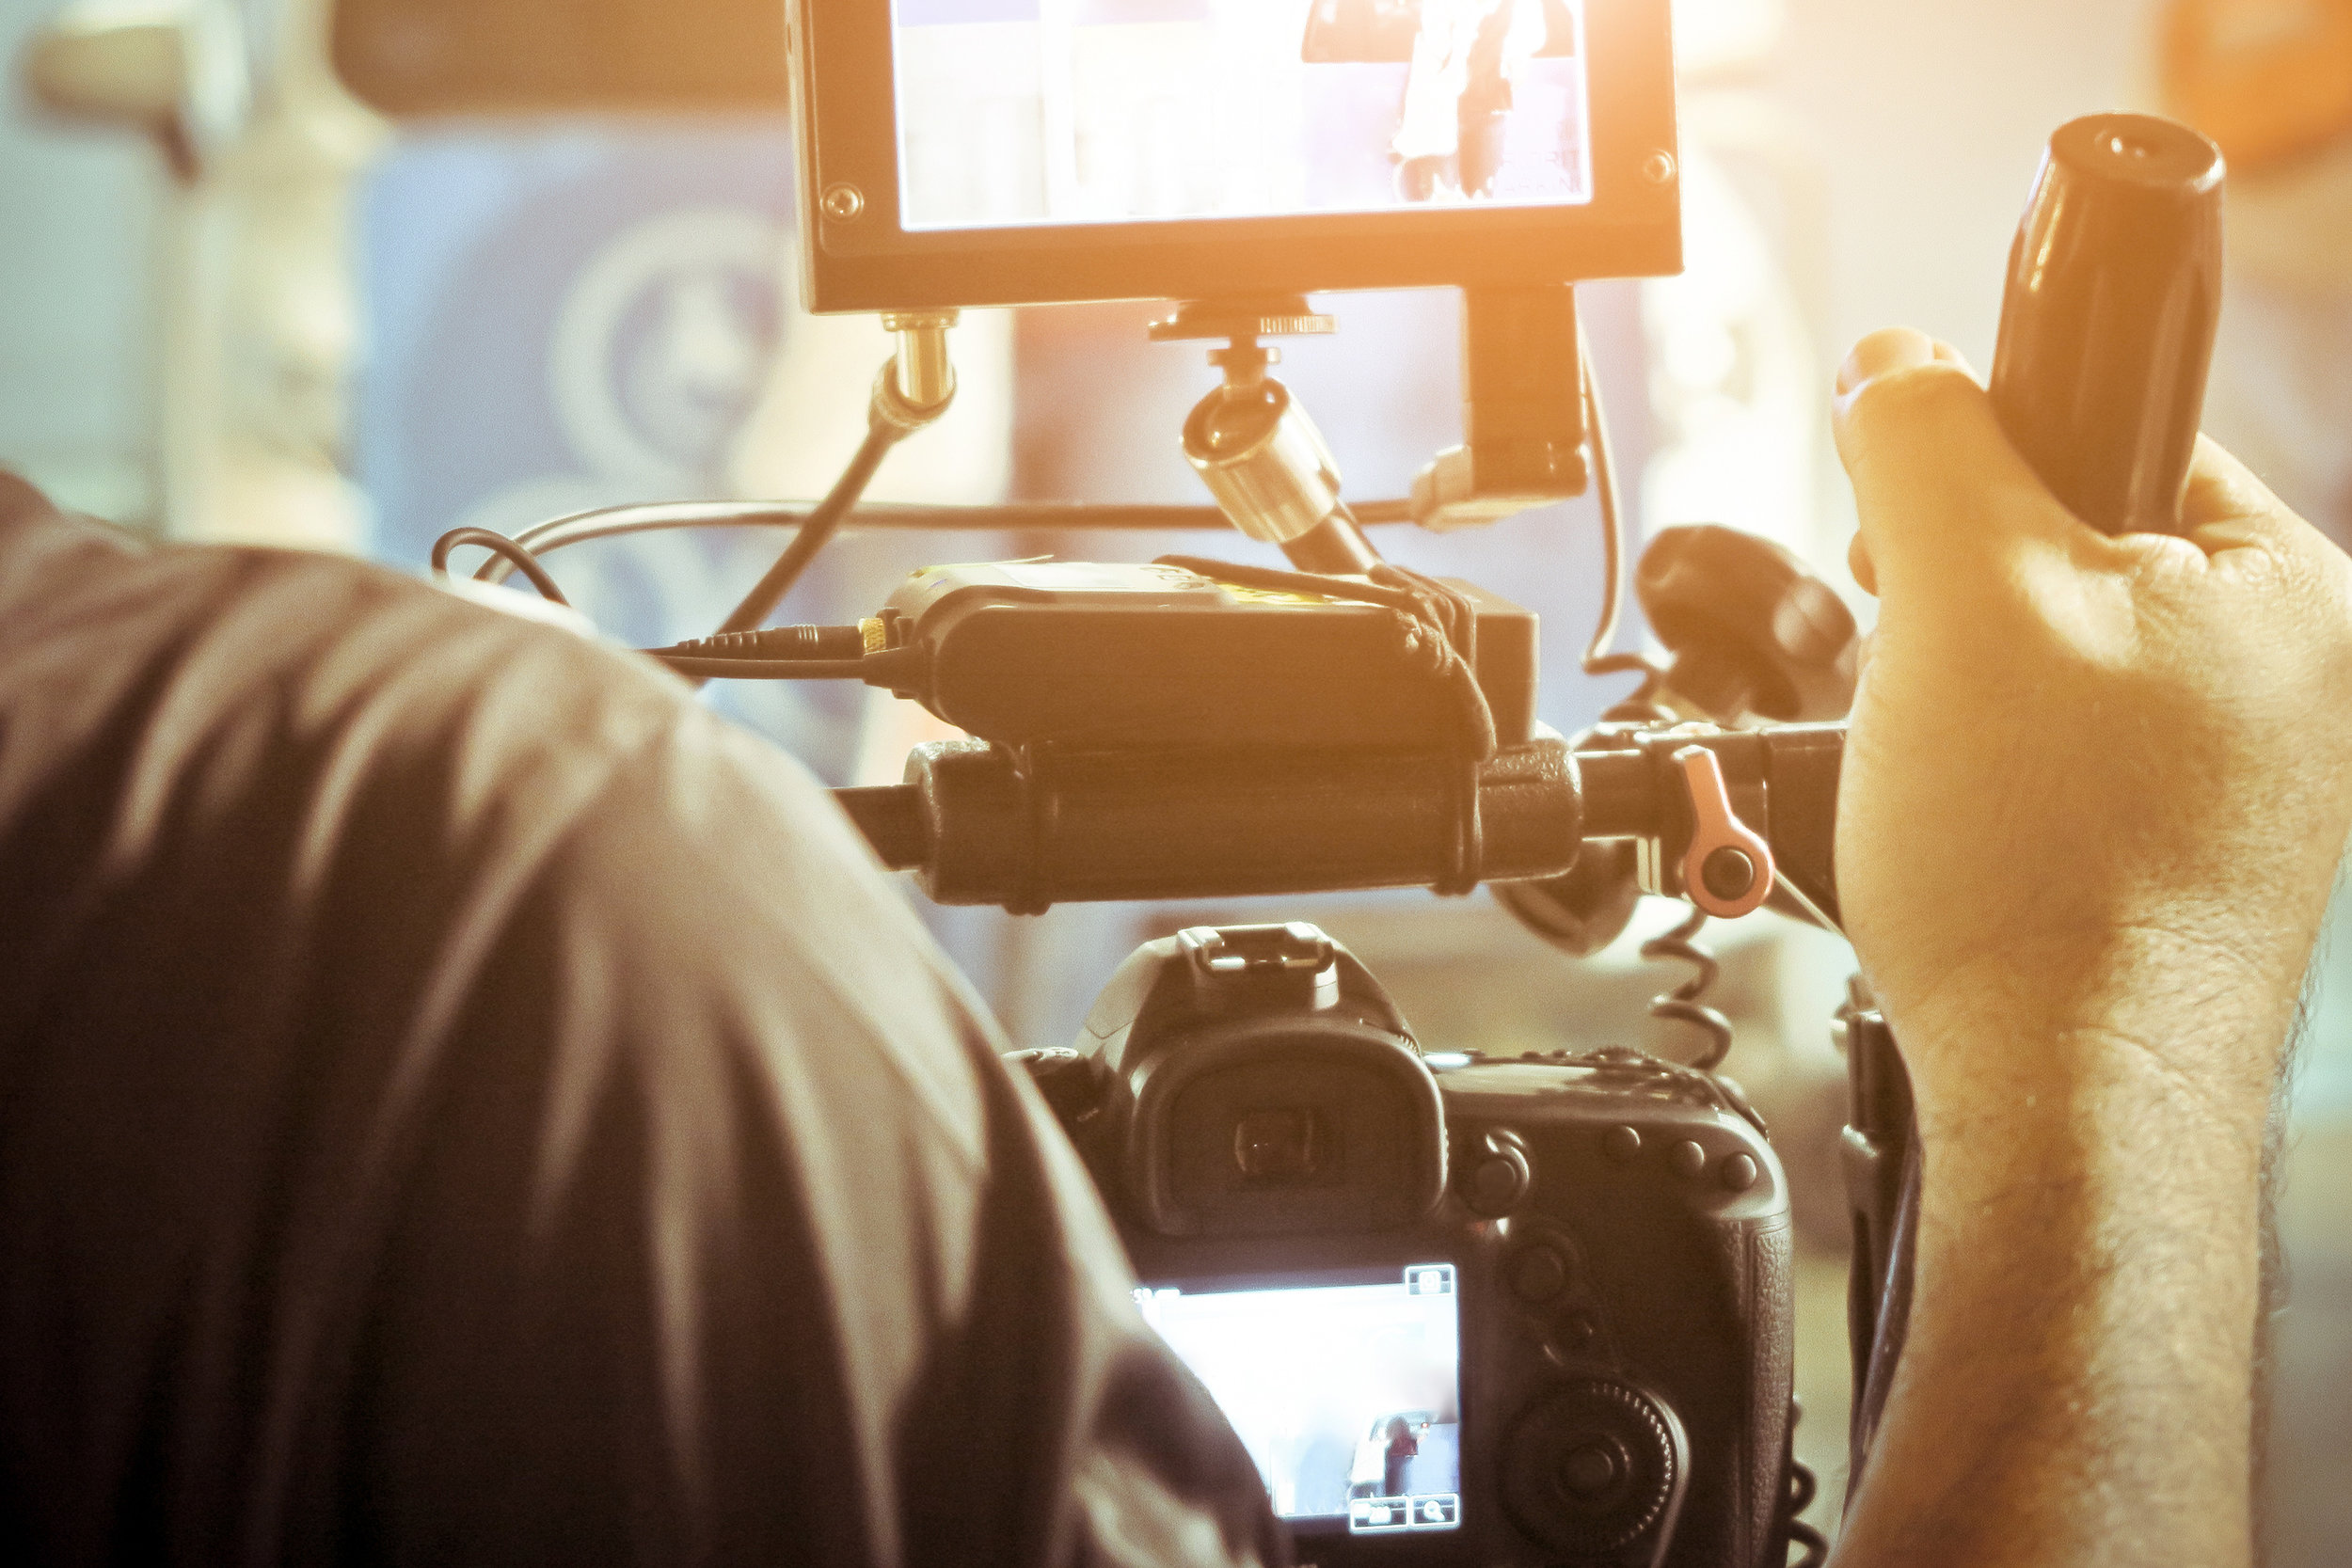 Commercial Video Production: -